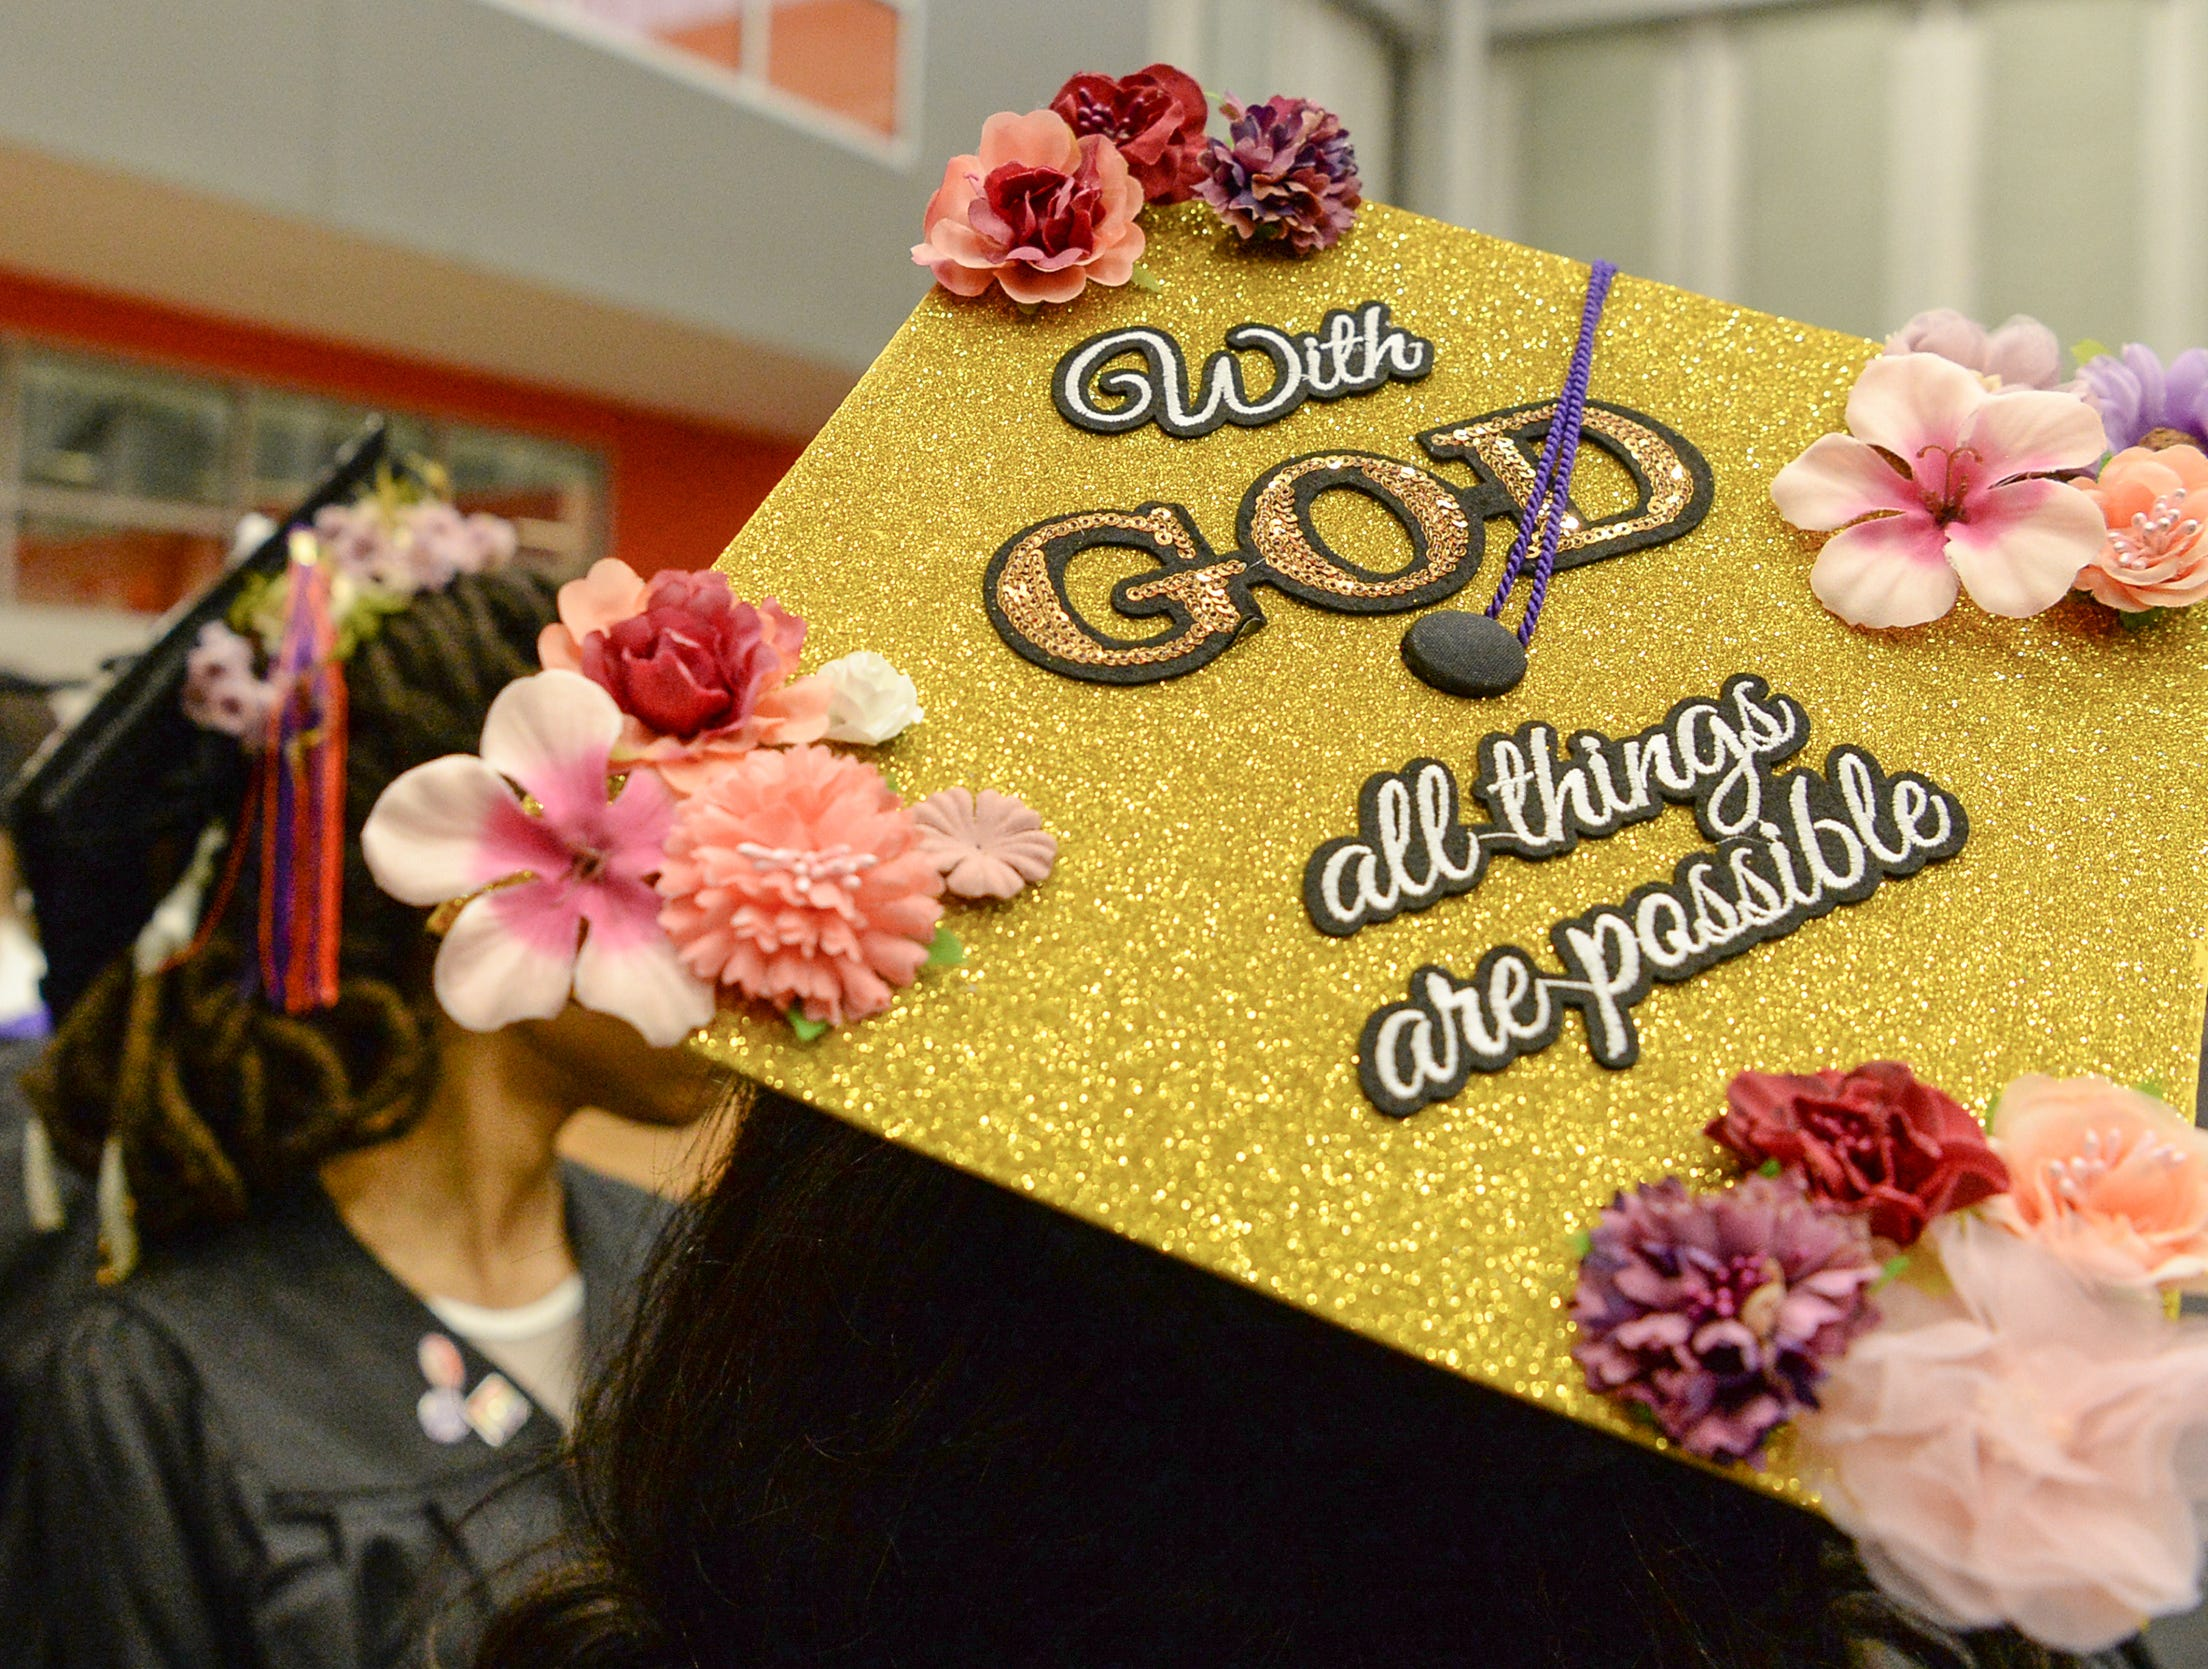 """Kirsten Curry wears a cap """"With God all things are possible"""" written on it during Clemson University commencement ceremonies in Littlejohn Coliseum in Clemson Friday, May 10, 2019."""